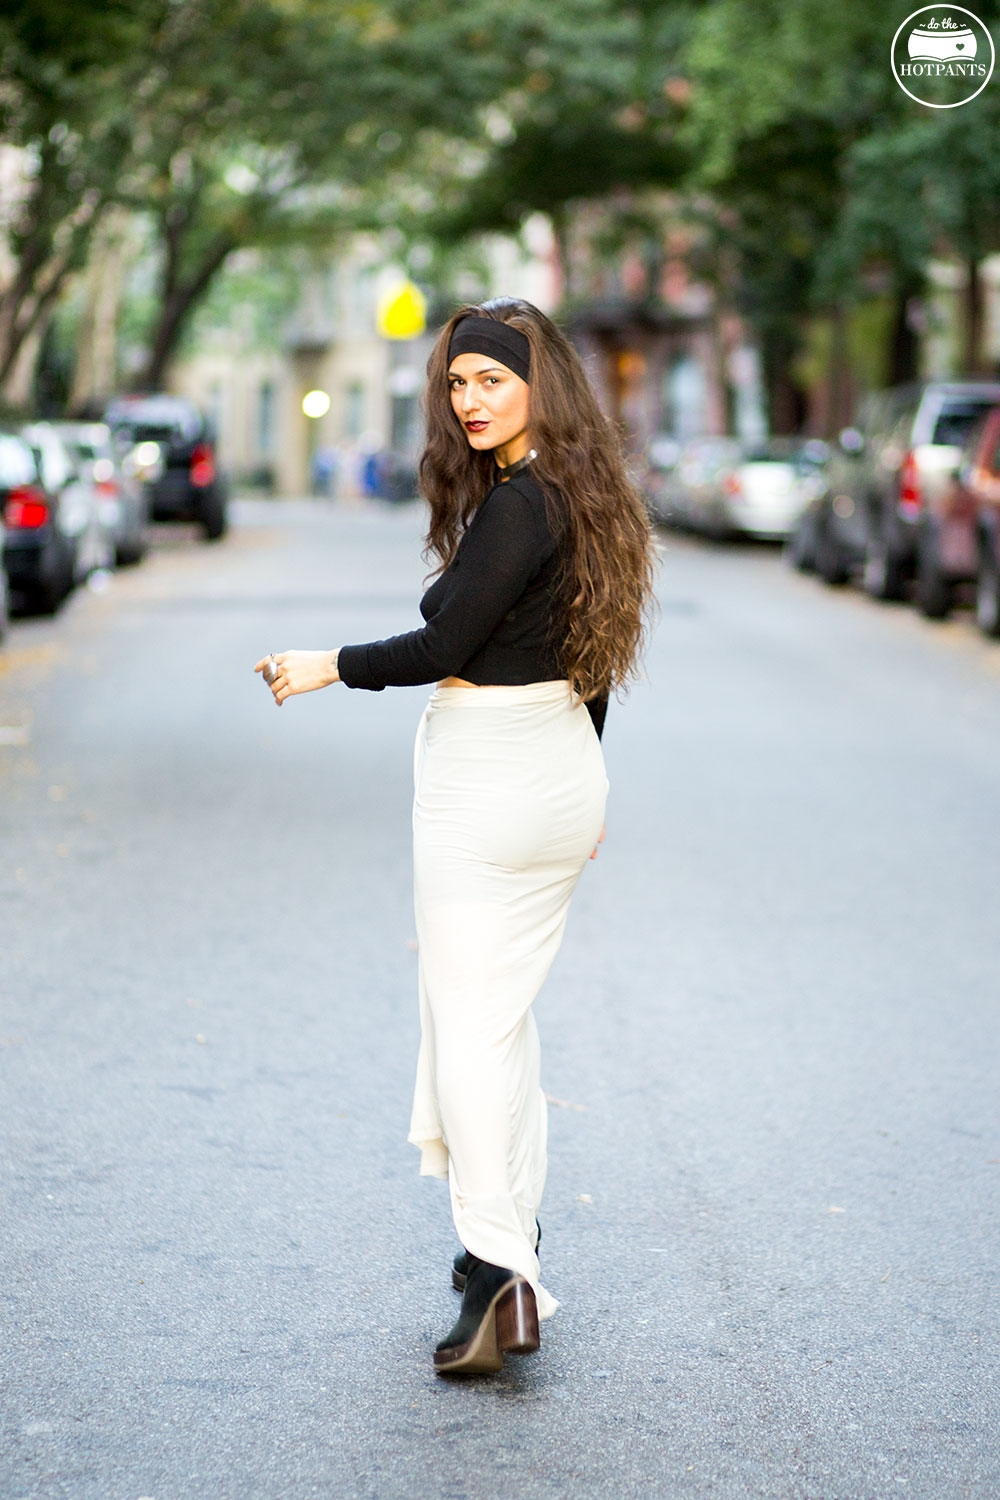 Do The Hotpants Dana Suchow Crop Top Sweater See Through Maxi Skirt No Bra Free The Nipple IMG_3418